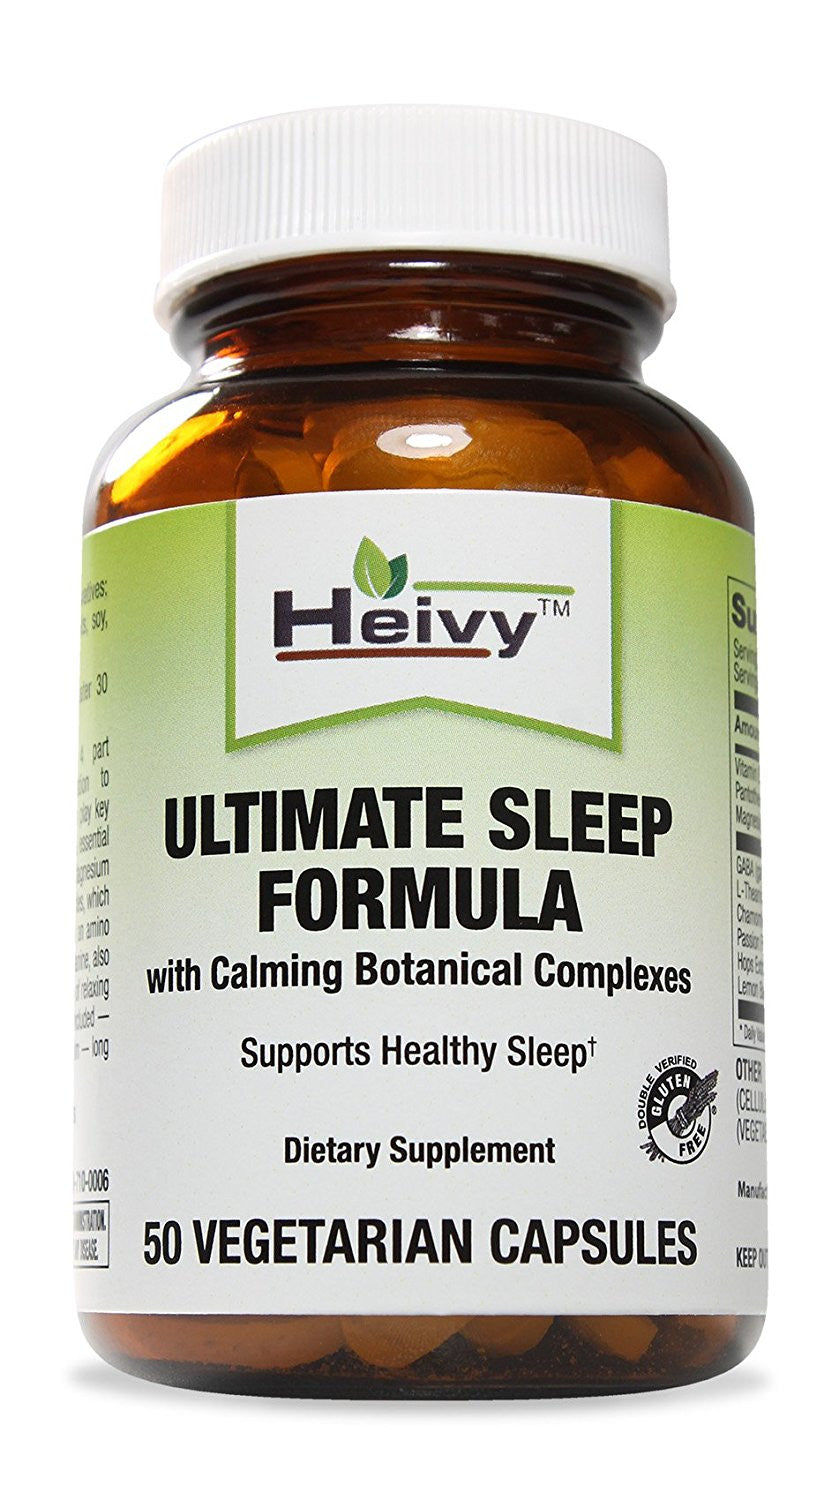 Ultimate Sleep Formula with Calming Botanical Complexes, 50 Veg Caps